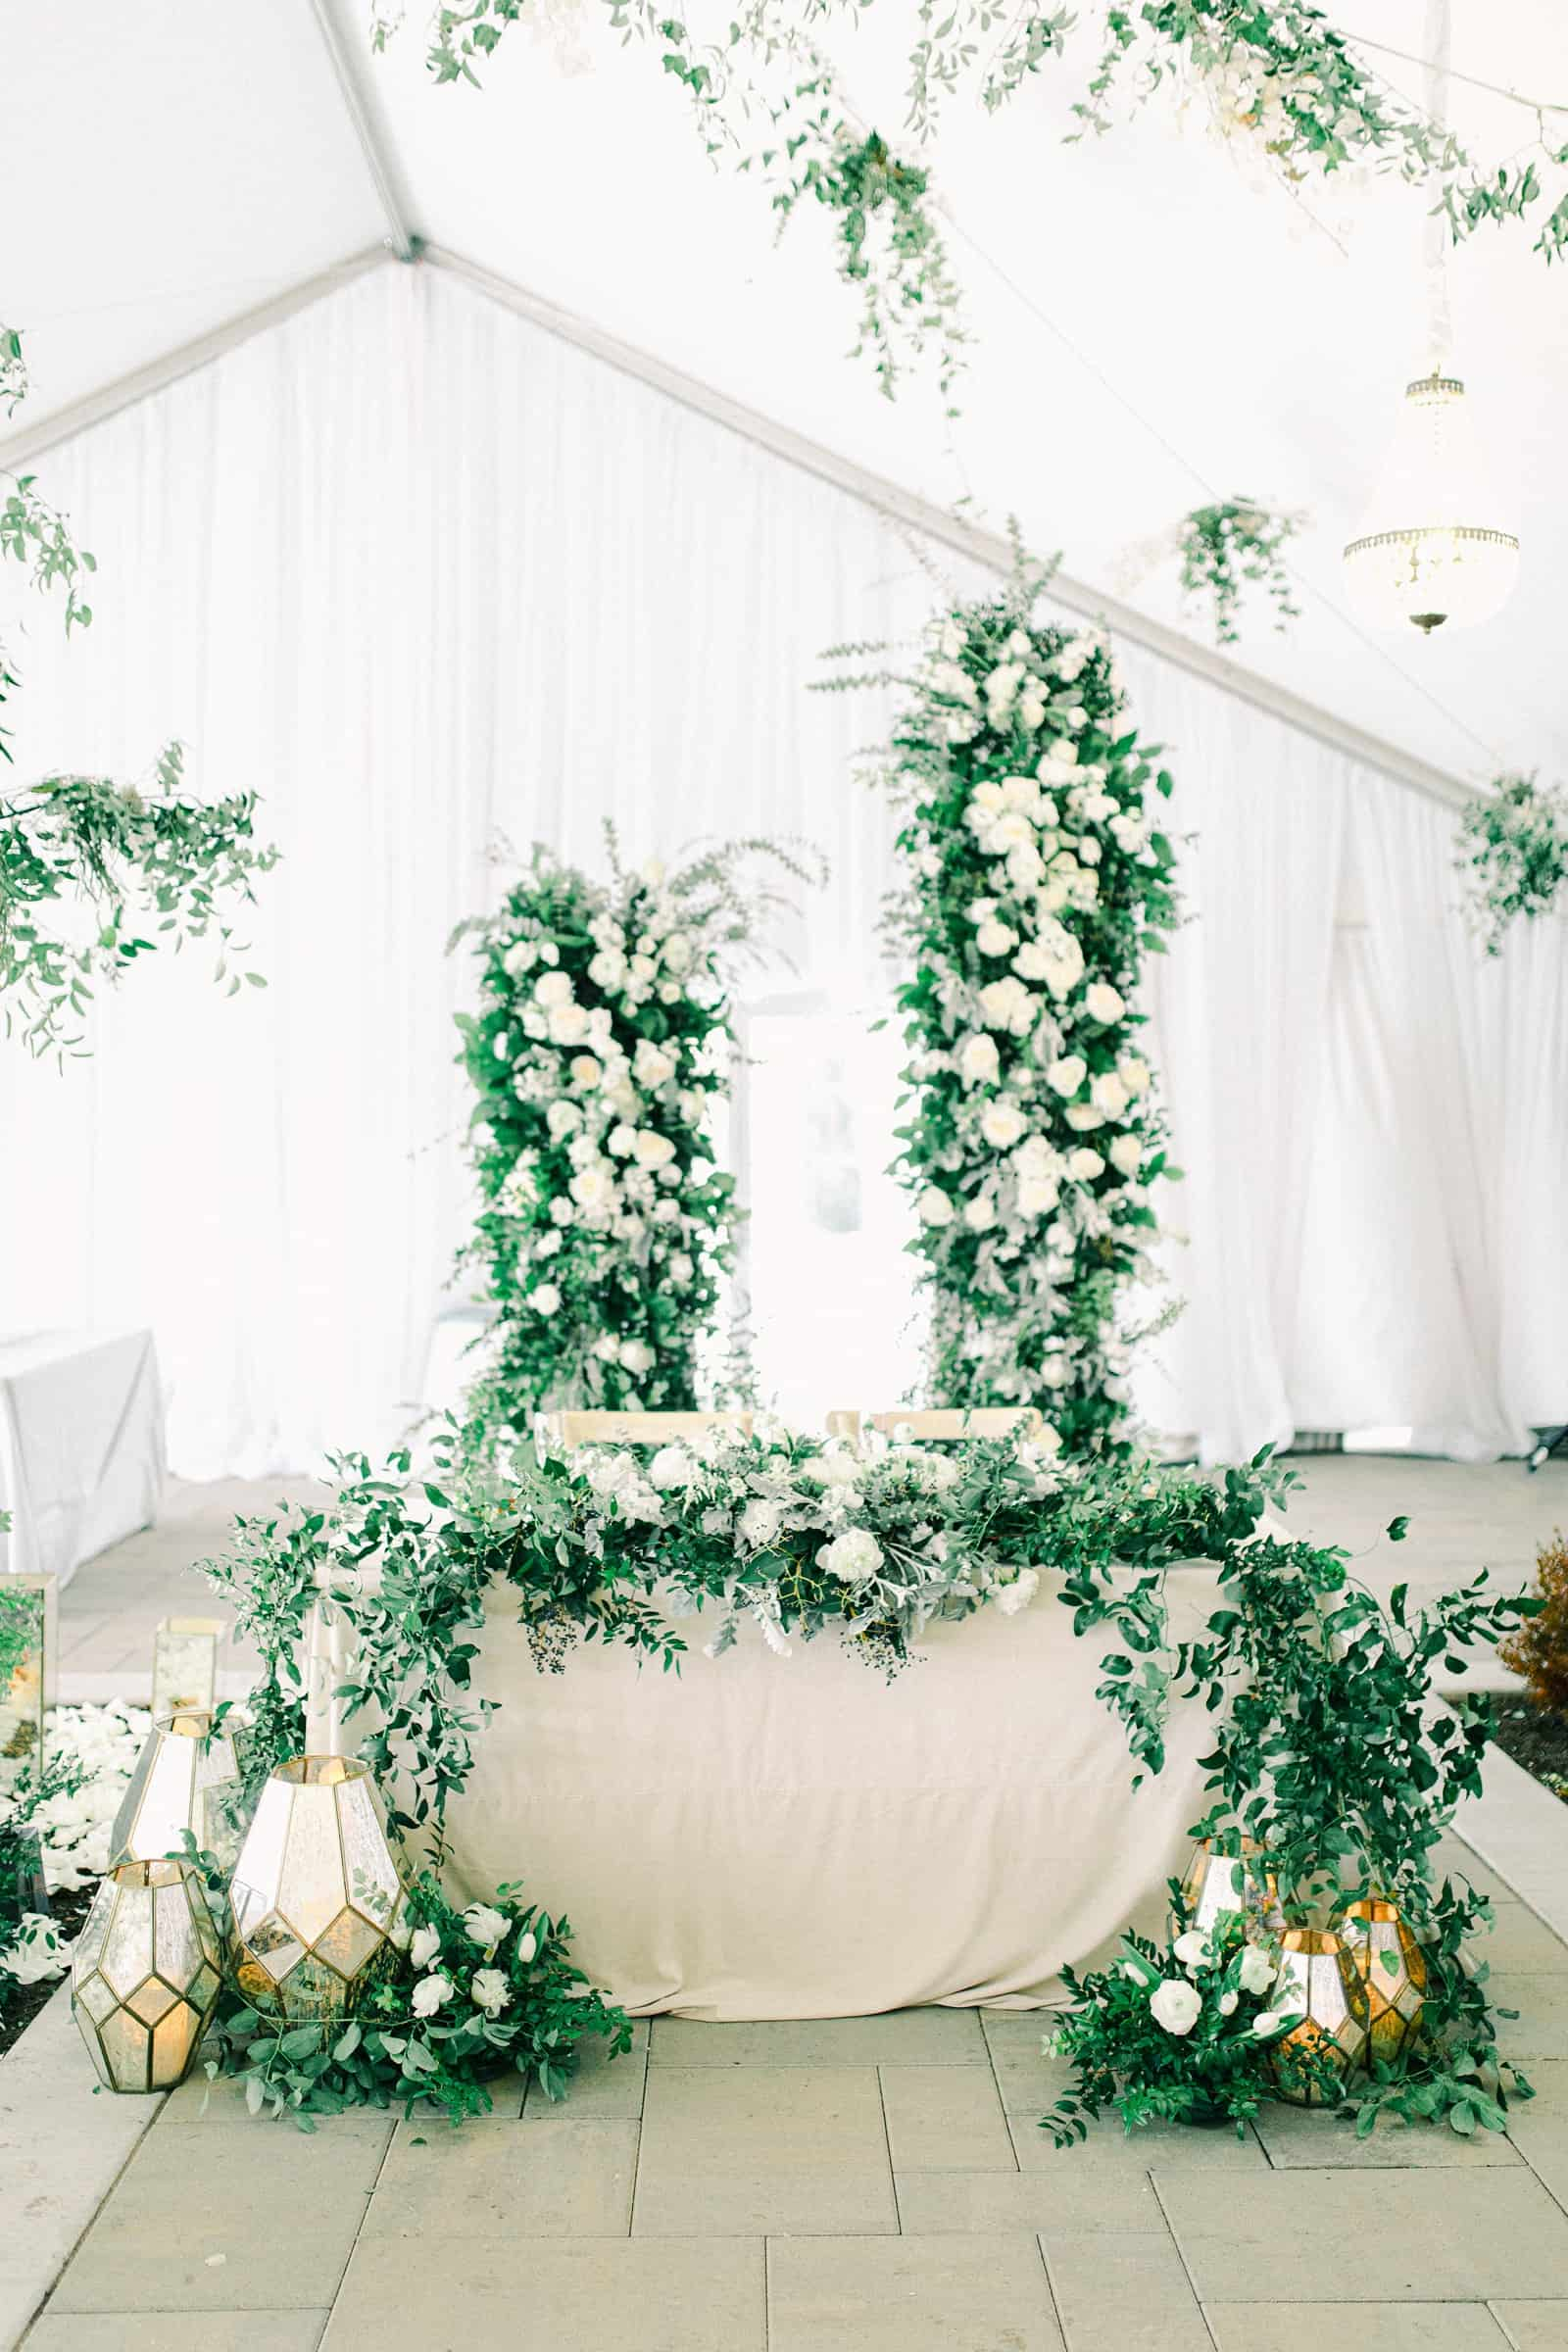 Luxury winter wedding at Willowbridge Estate in Boise, Idaho, floral arch with white flowers roses and greenery backdrop